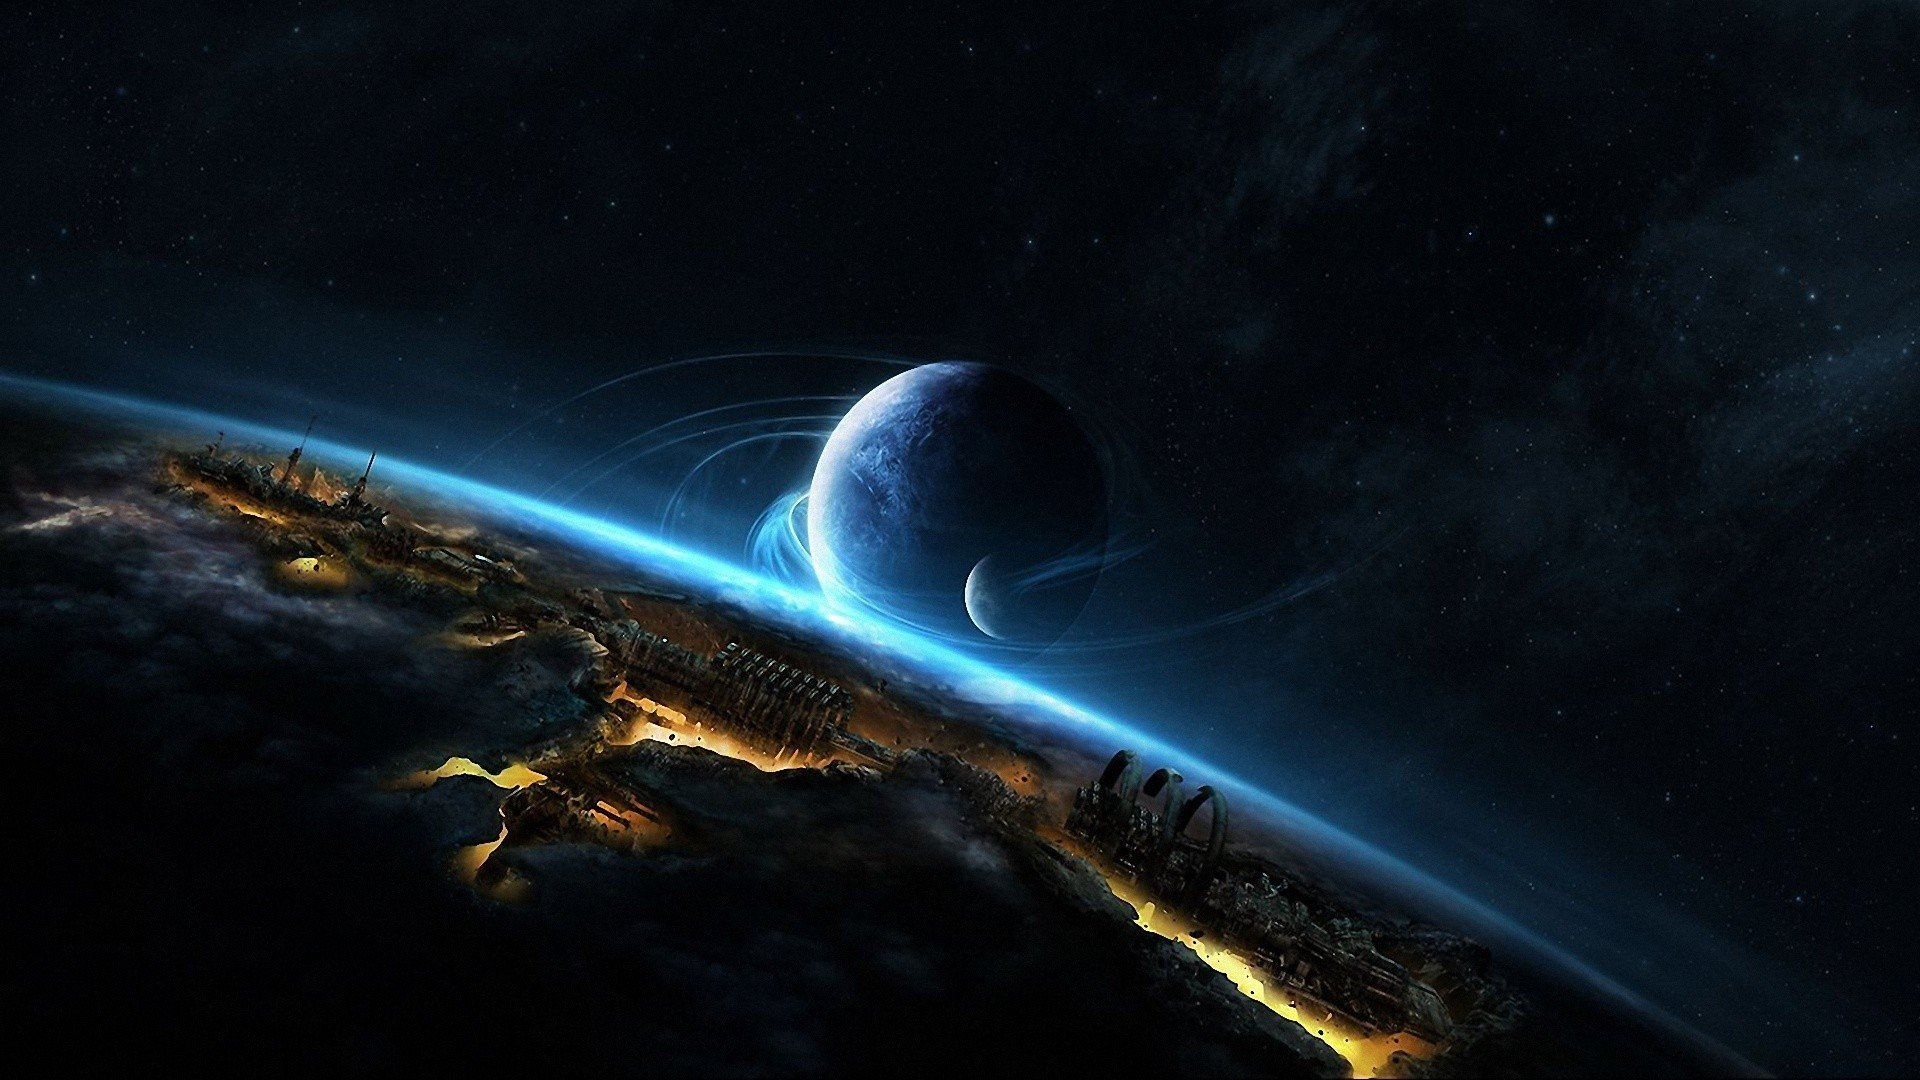 outer space wallpaper science fiction - photo #16